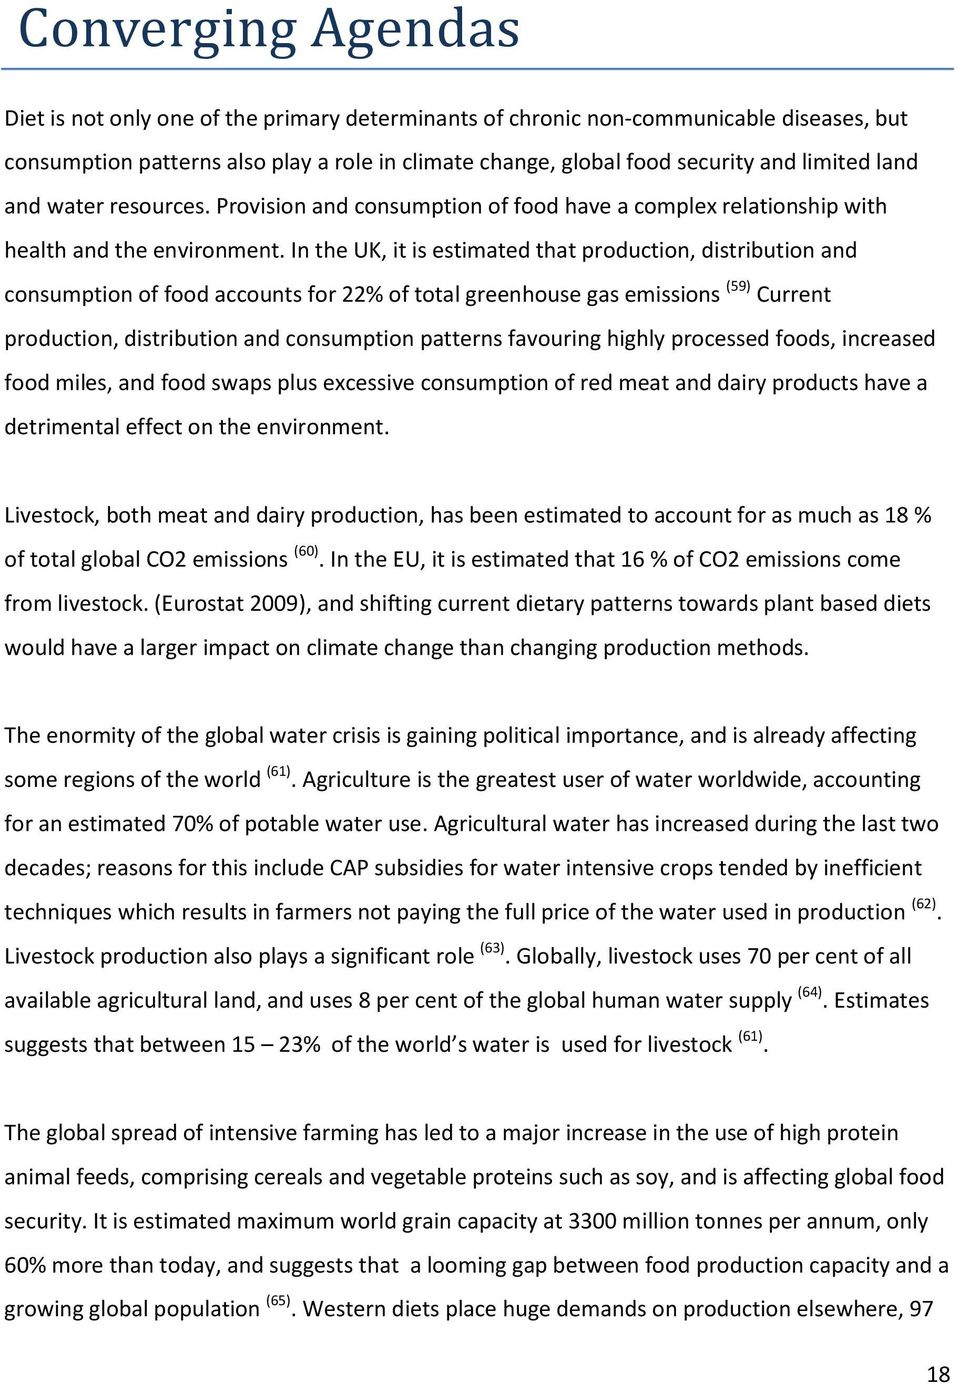 In the UK, it is estimated that production, distribution and consumption of food accounts for 22% of total greenhouse gas emissions (59) Current production, distribution and consumption patterns